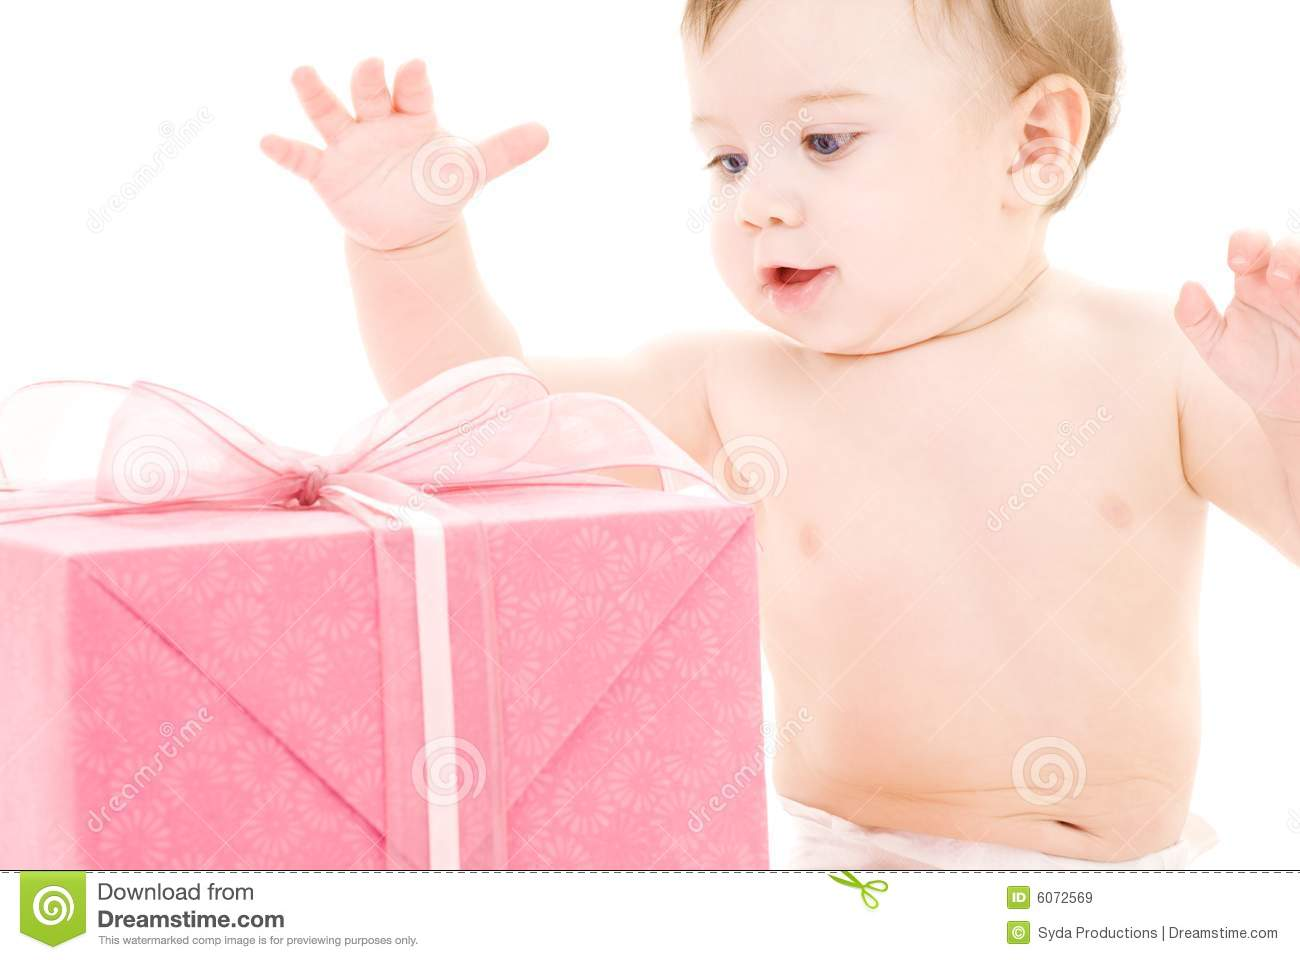 Baby Gift Images : Baby boy with gift box royalty free stock images image